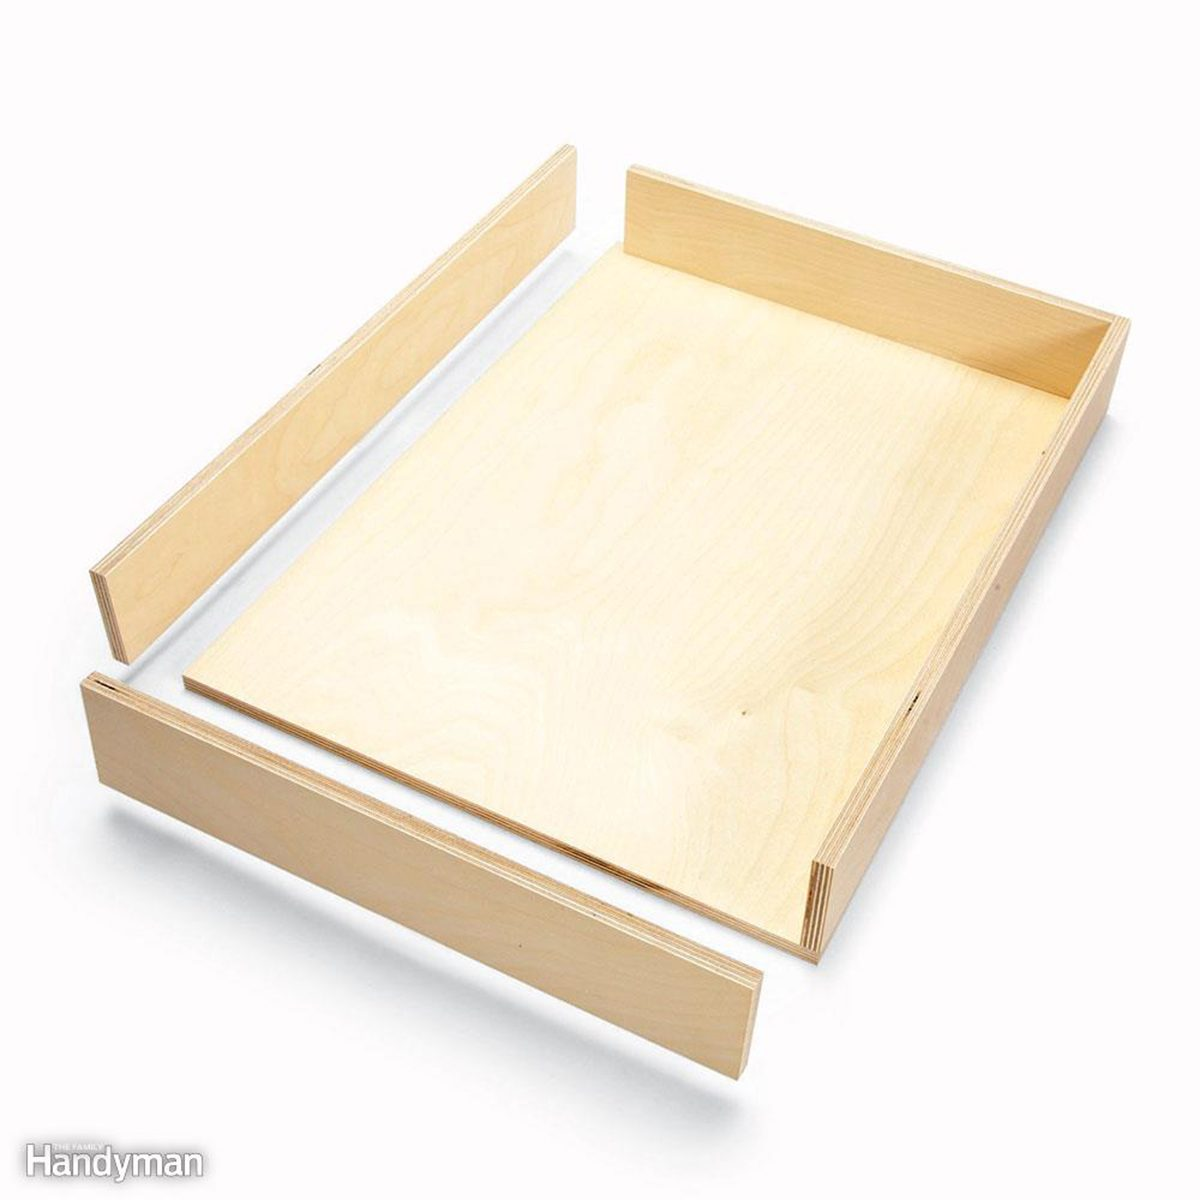 Simple wooden drawer example